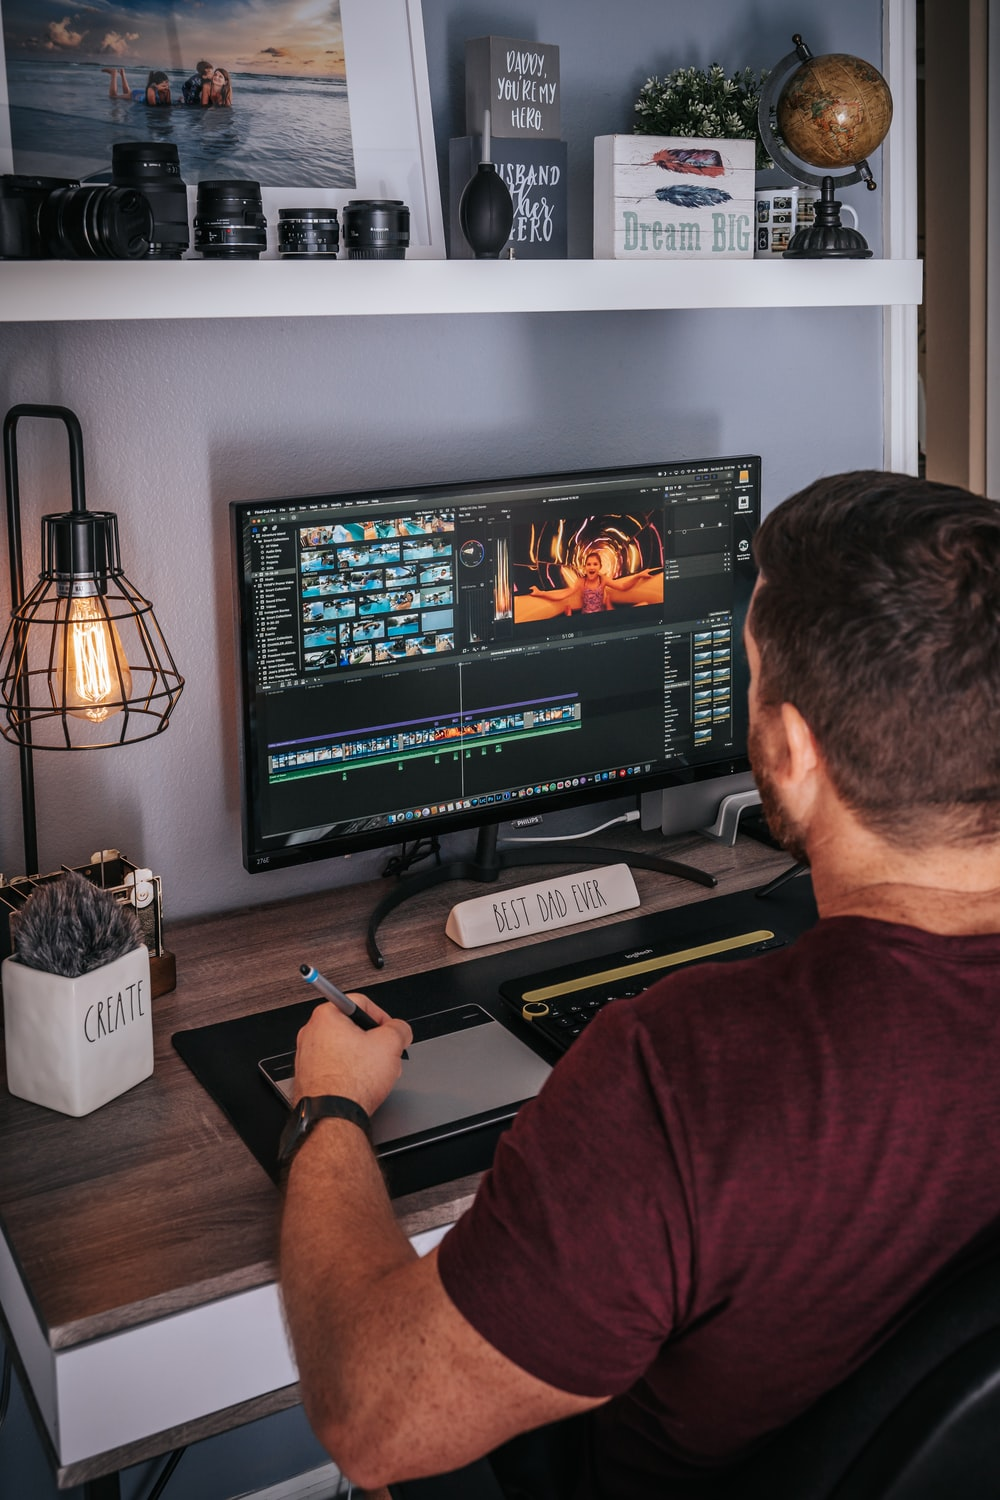 man in red shirt sitting in front of black flat screen computer monitor